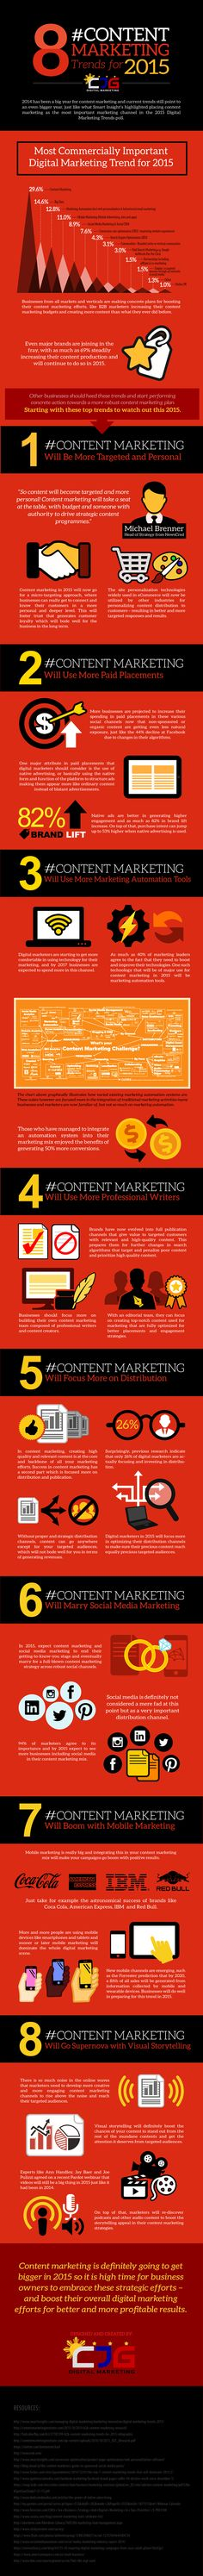 8 Content Marketing Trends For 2015 | WeRSM | We Are Social Media